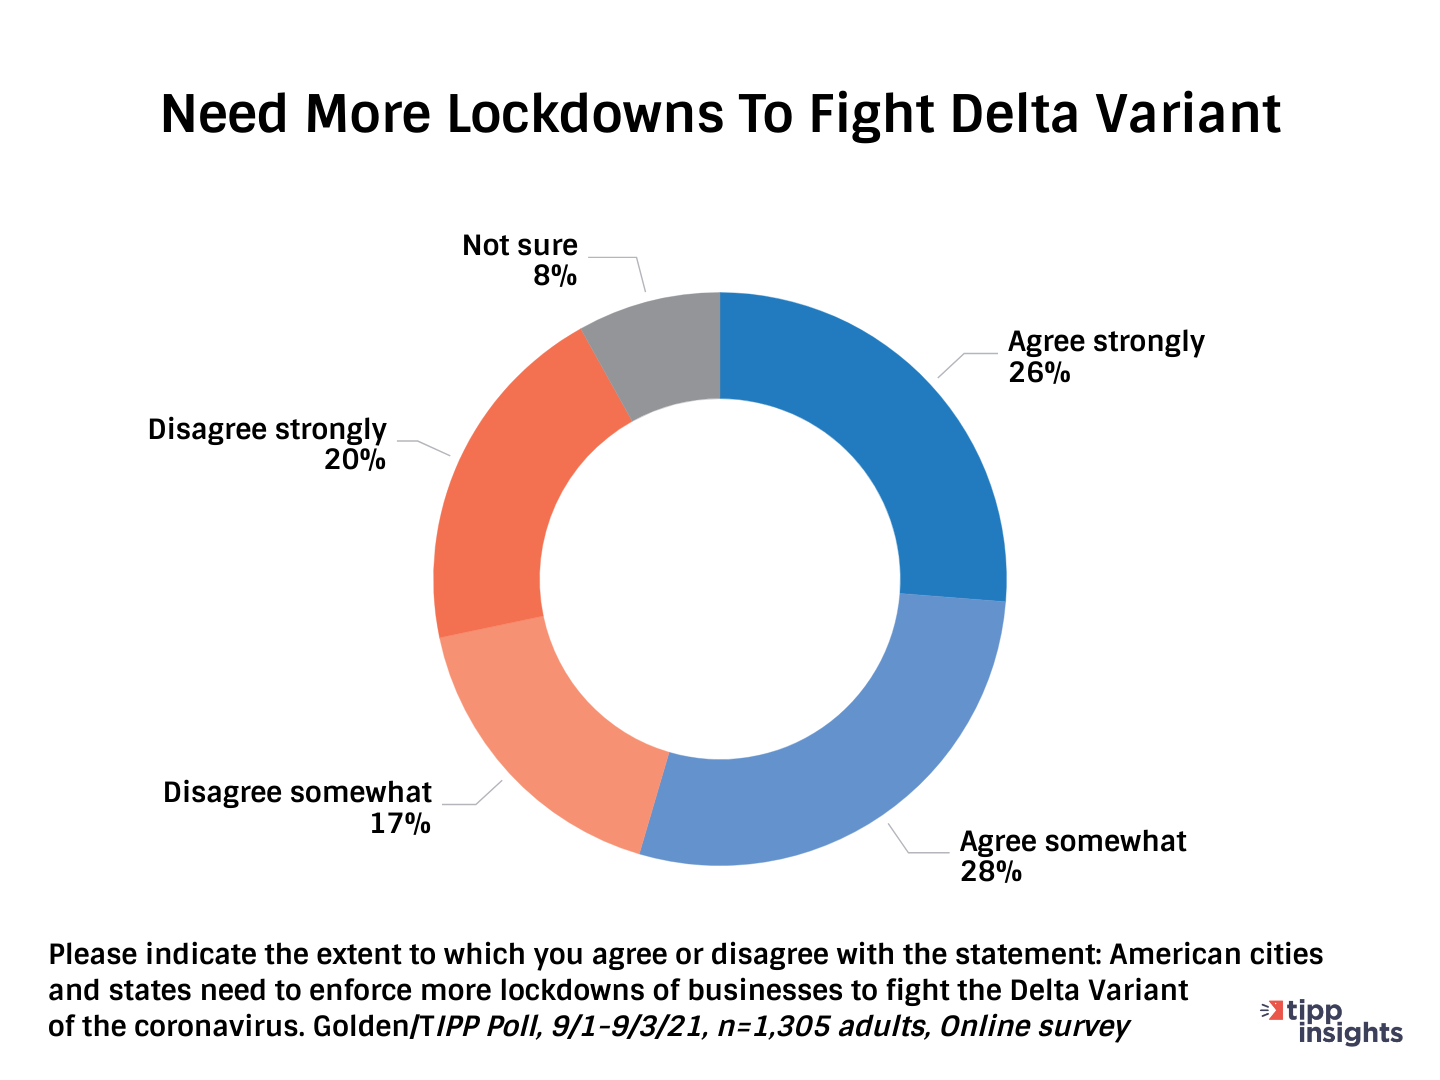 TIPP/Golden Poll Results: Americans who believe America Need more lockdowns to fight Delta